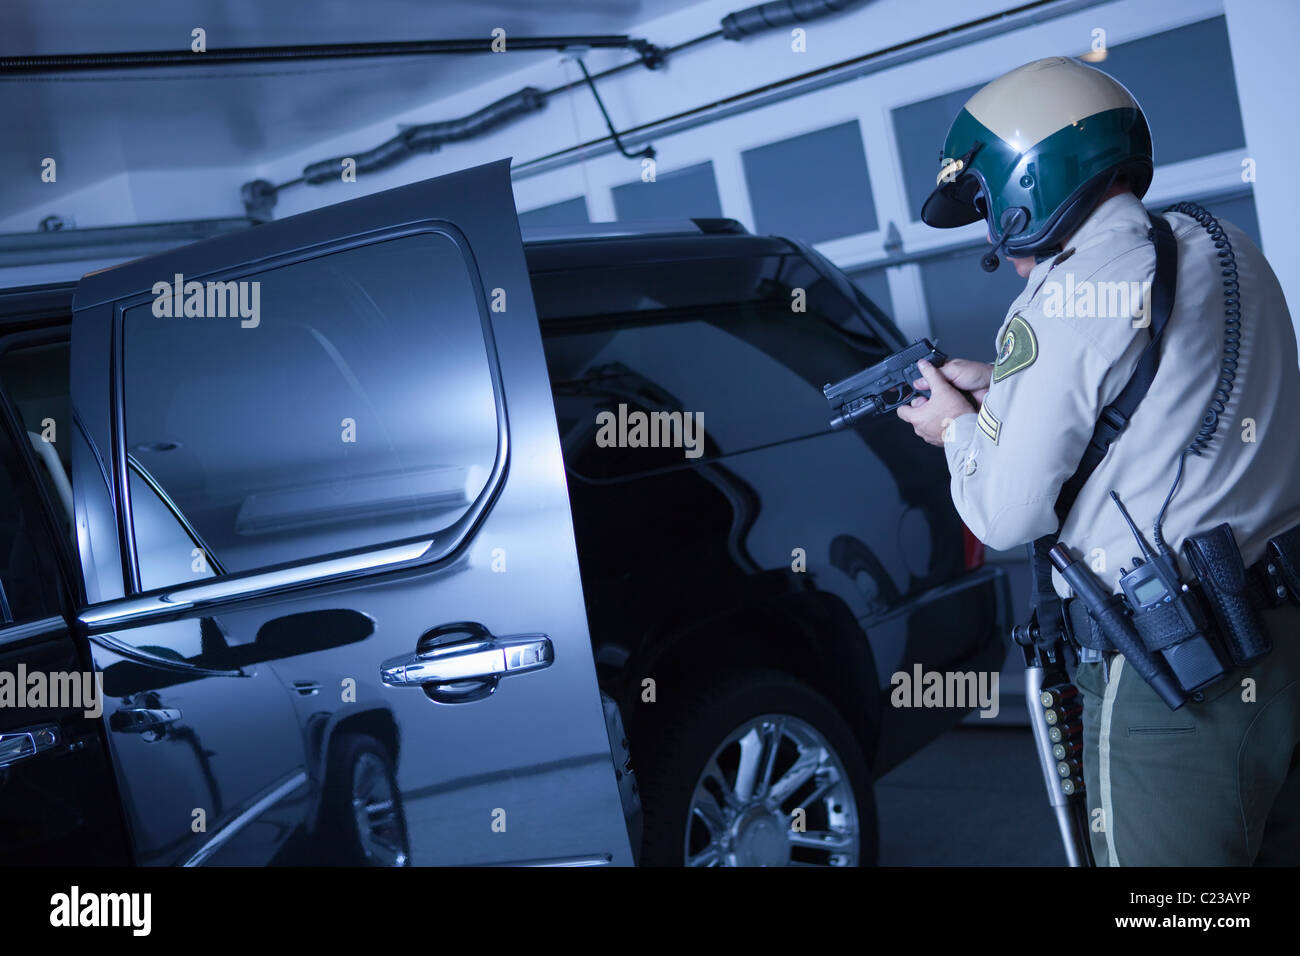 Nightwatch patrolman:stand off with luxury car in garage - Stock Image